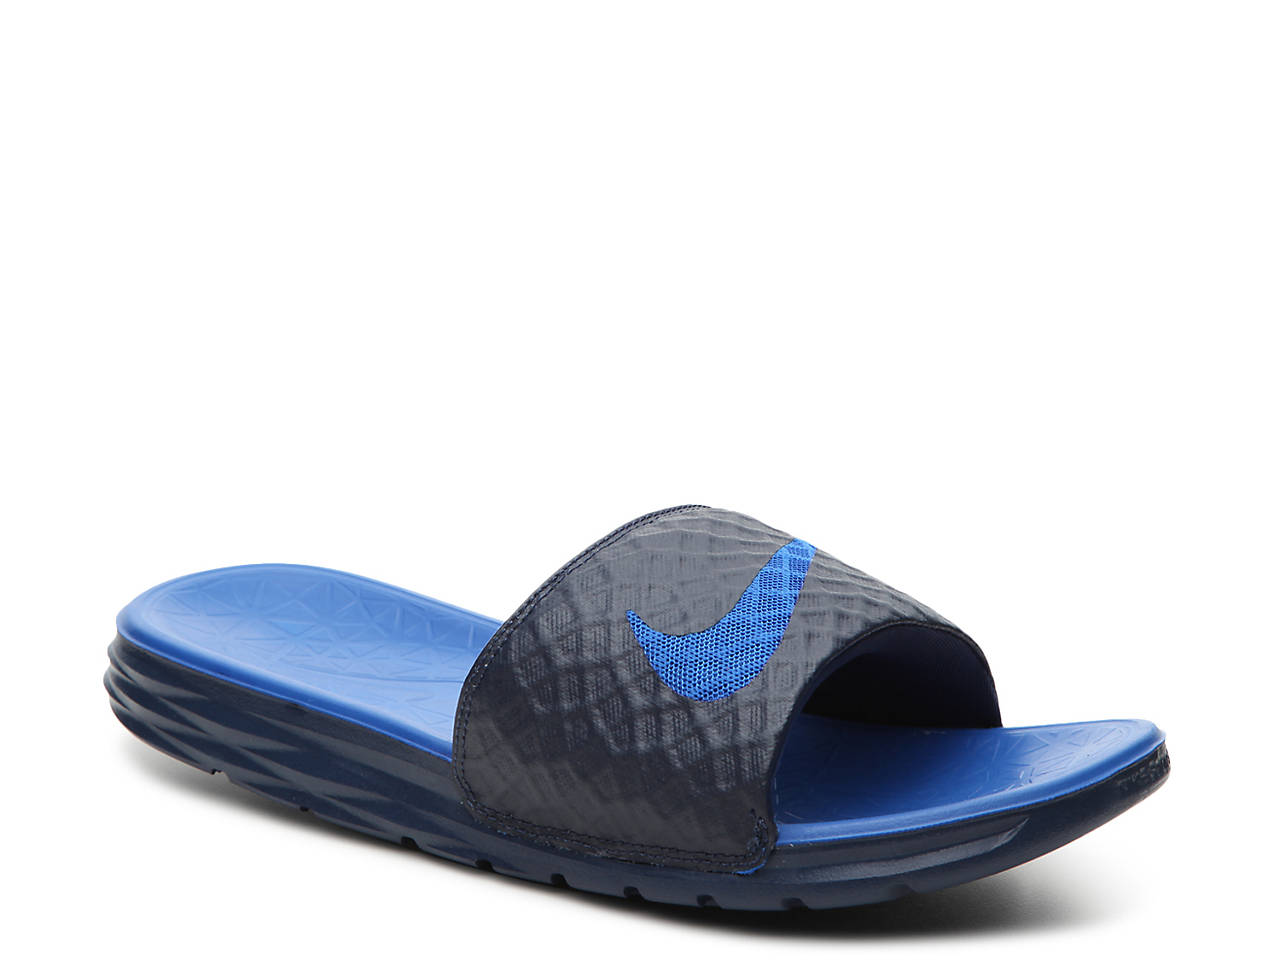 88017e04d00c5 Nike Benassi Solarsoft 2 Slide Sandal - Men s Men s Shoes